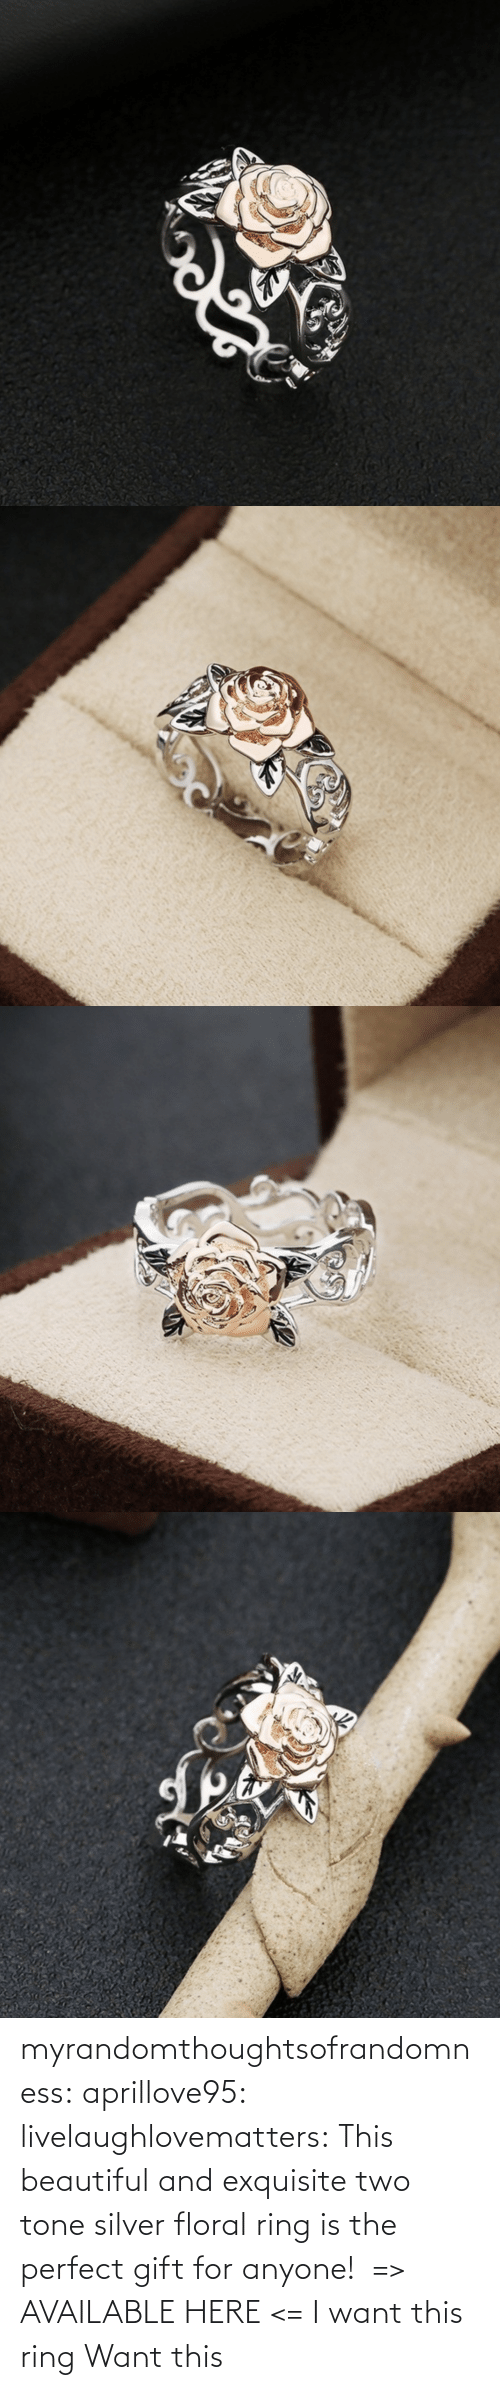 perfect: myrandomthoughtsofrandomness:  aprillove95: livelaughlovematters:  This beautiful and exquisite two tone silver floral ring is the perfect gift for anyone!  => AVAILABLE HERE <=    I want this ring     Want this